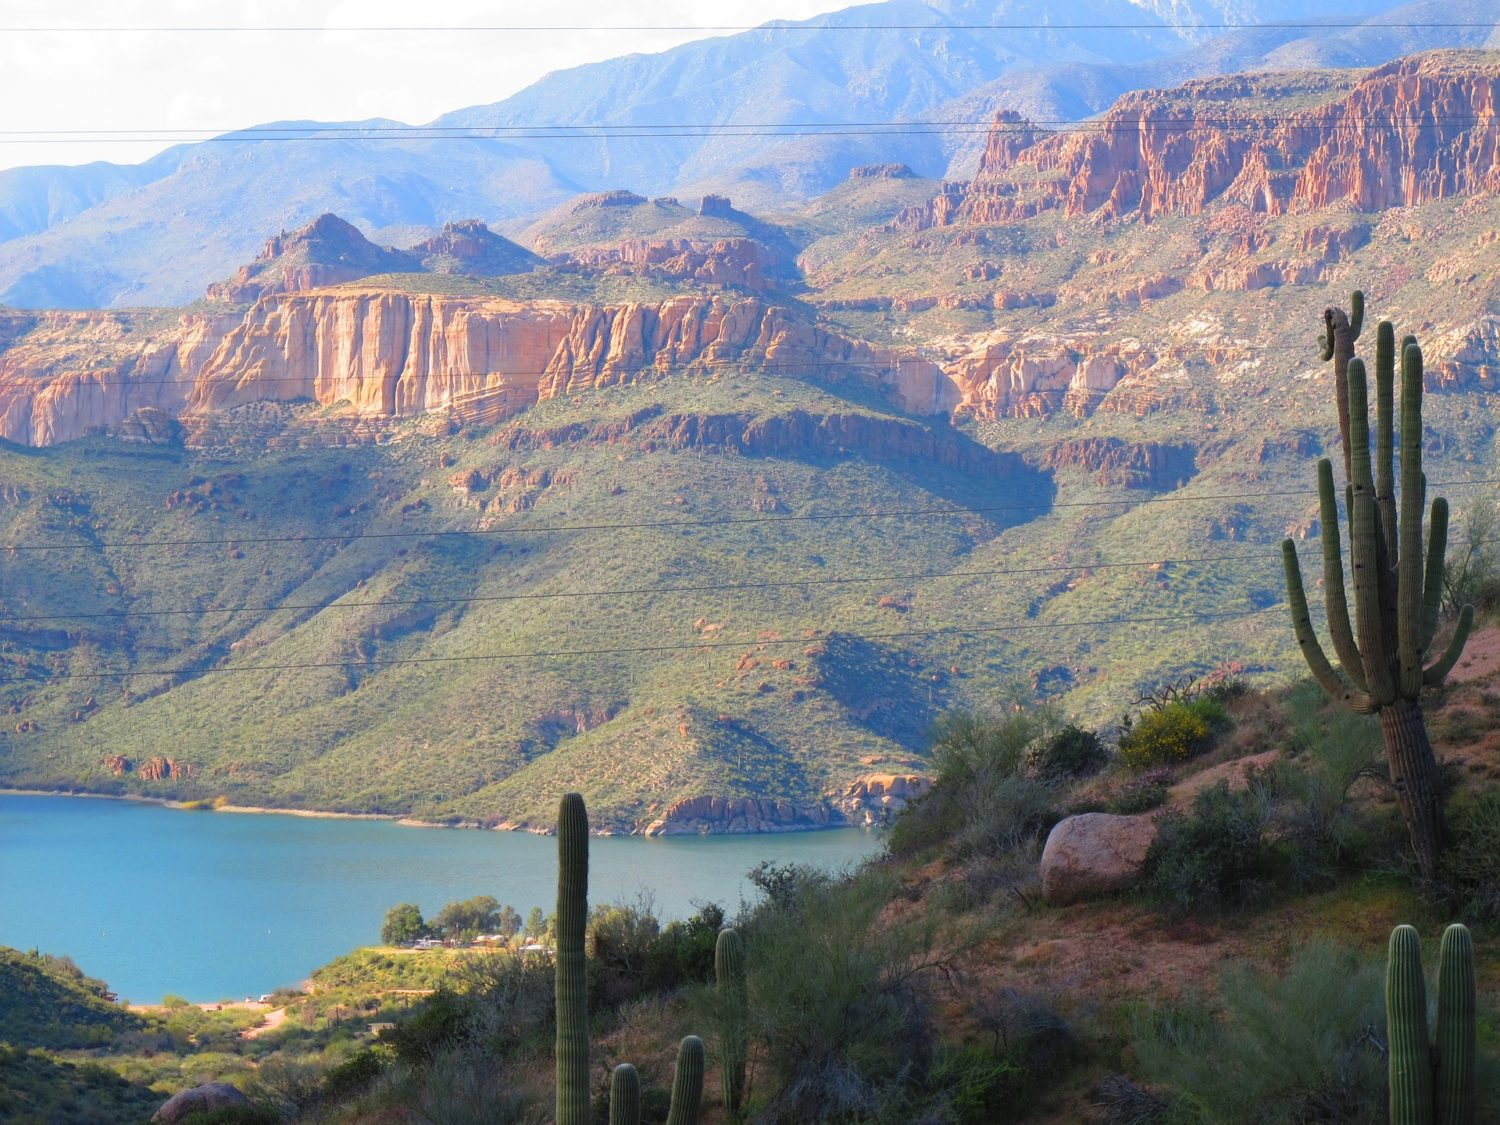 The Apache Trail, close to Phoenix, Arizona